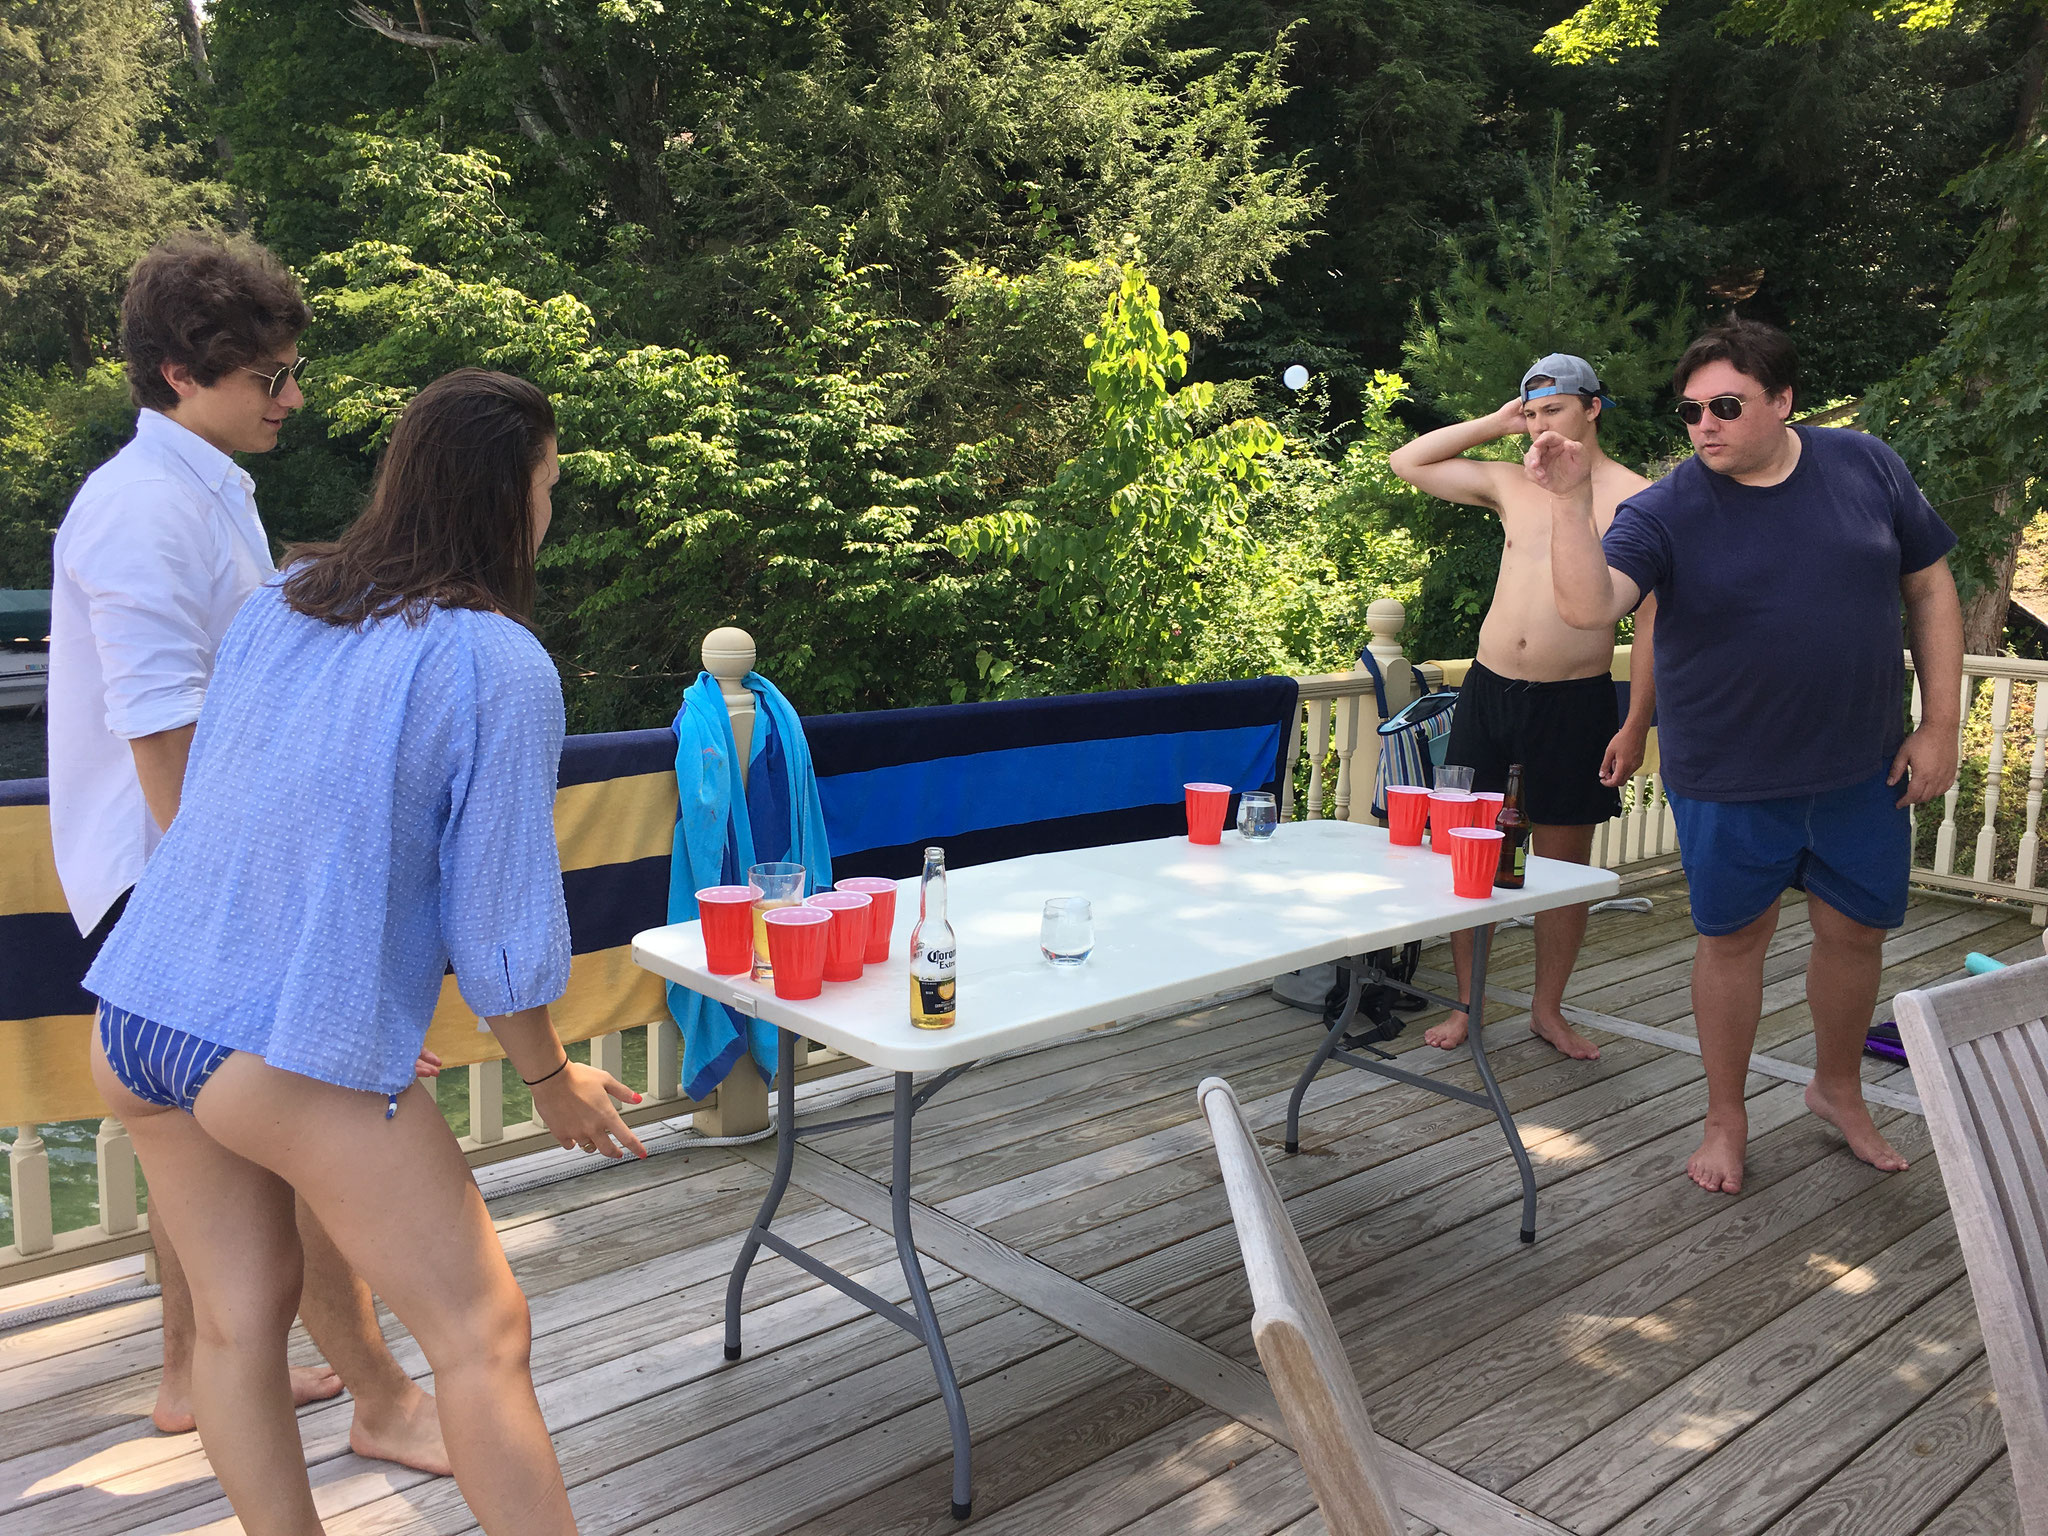 Playing Beer Pong